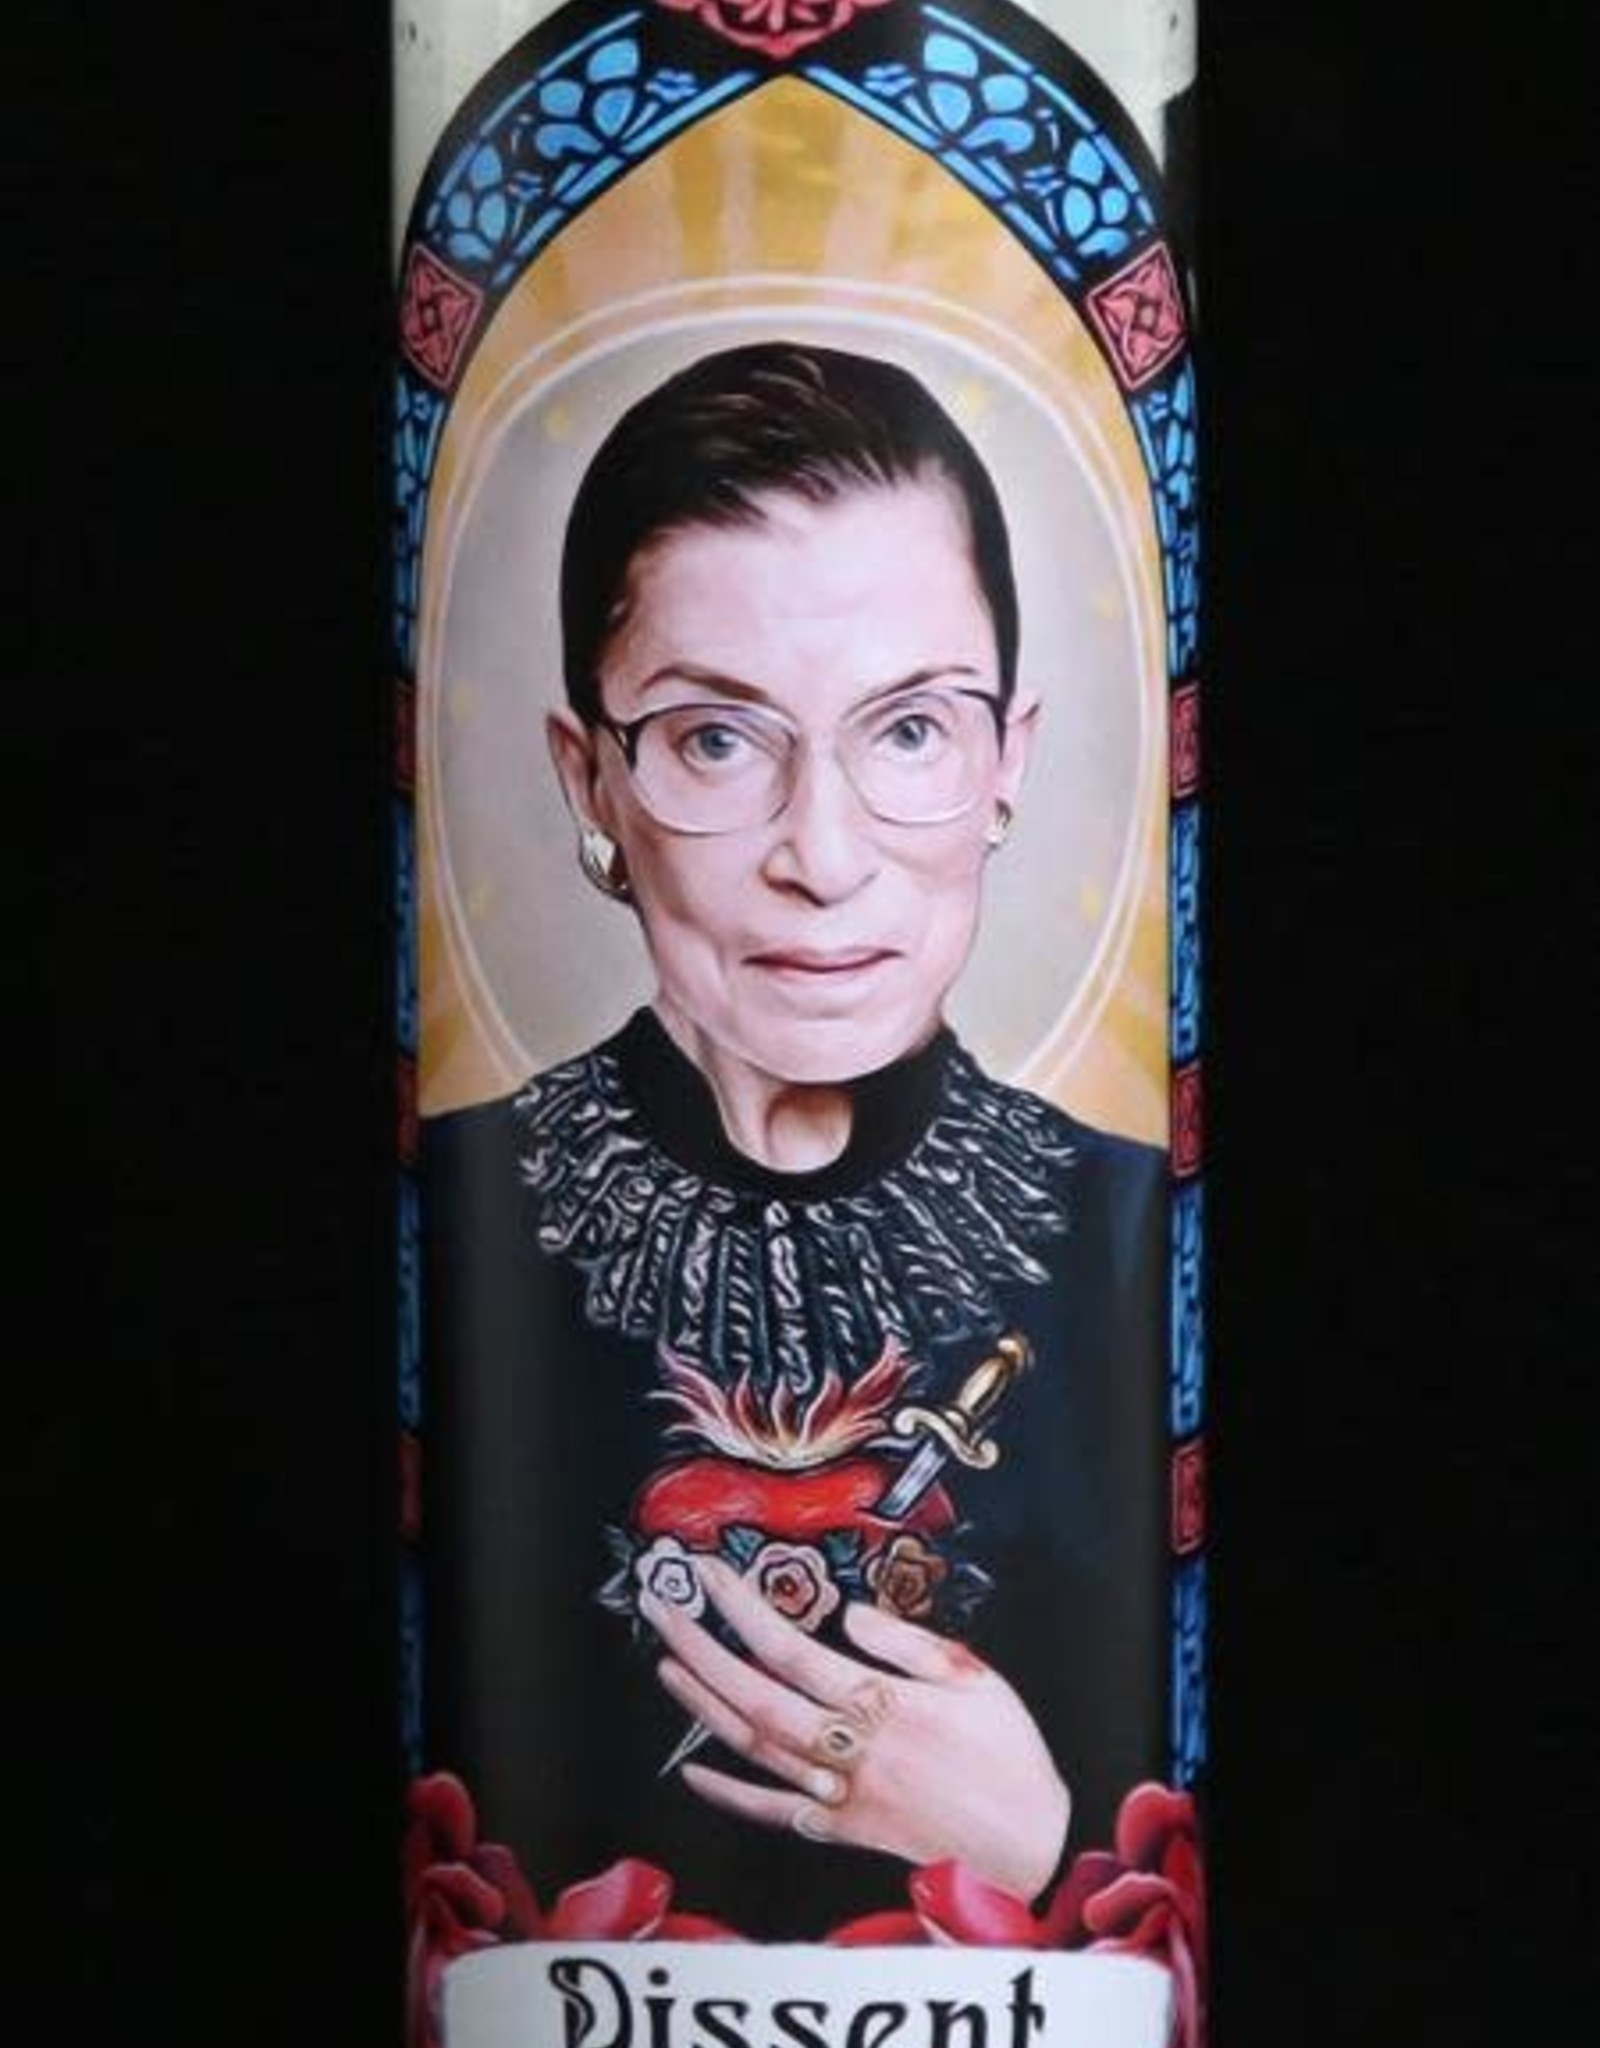 Ruth Bader Ginsburg Prayer Candle by Eternal Flame